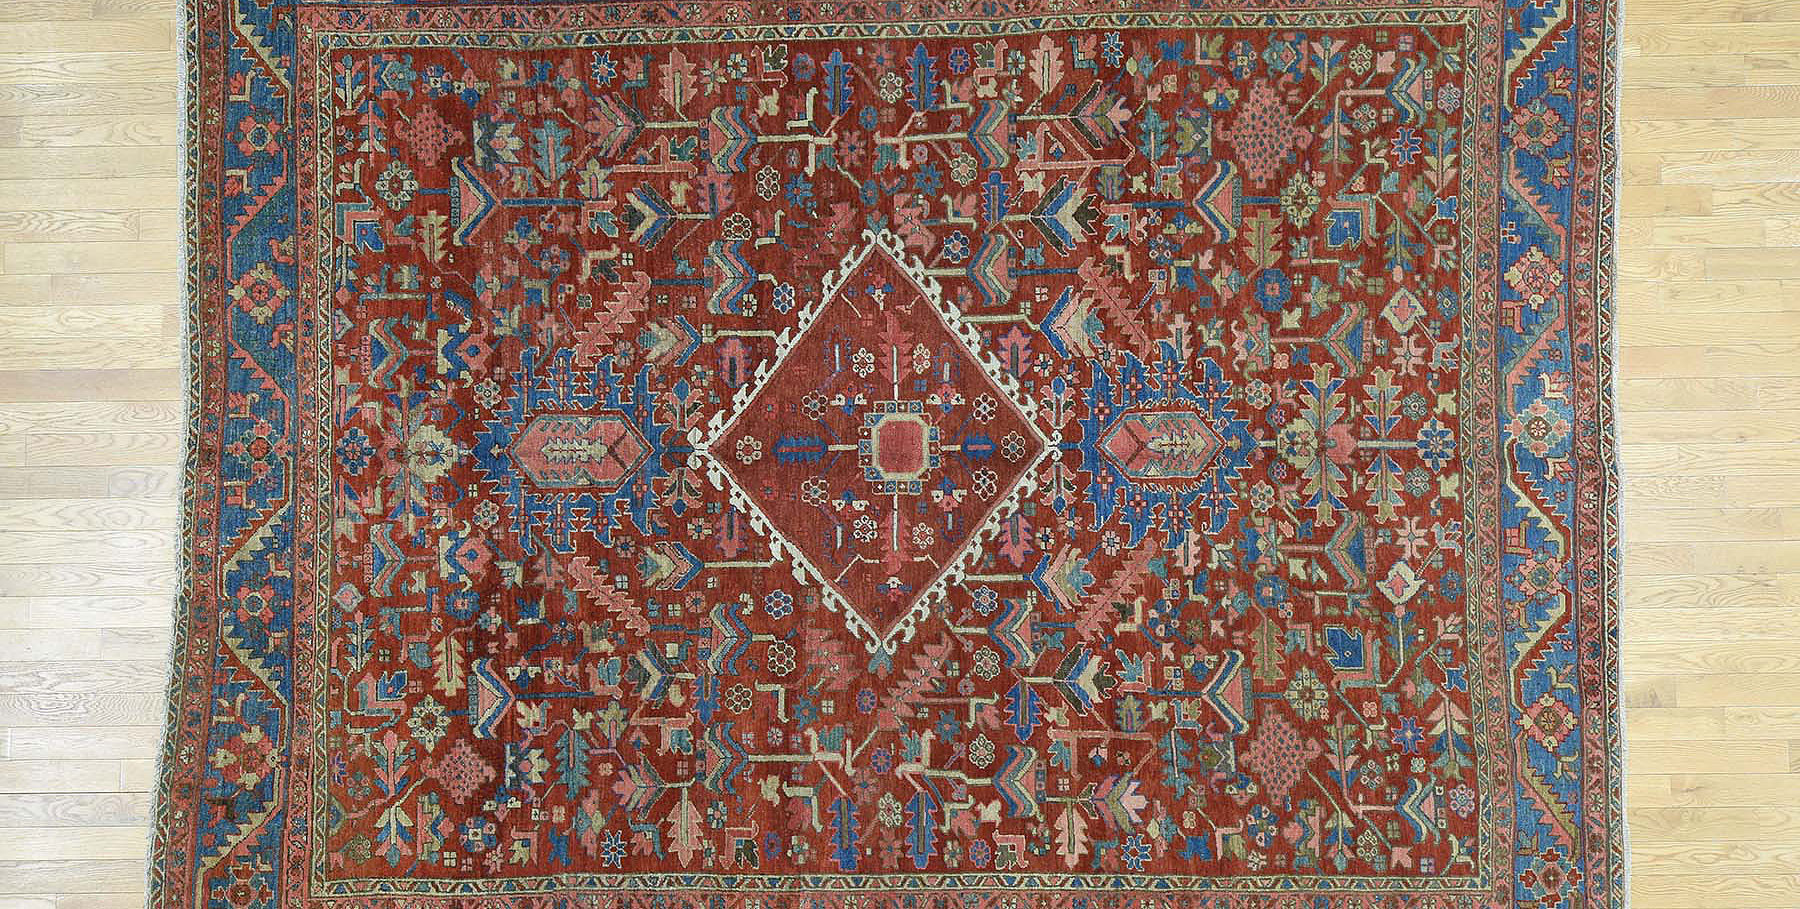 Antique heriz Carpet - # 53168